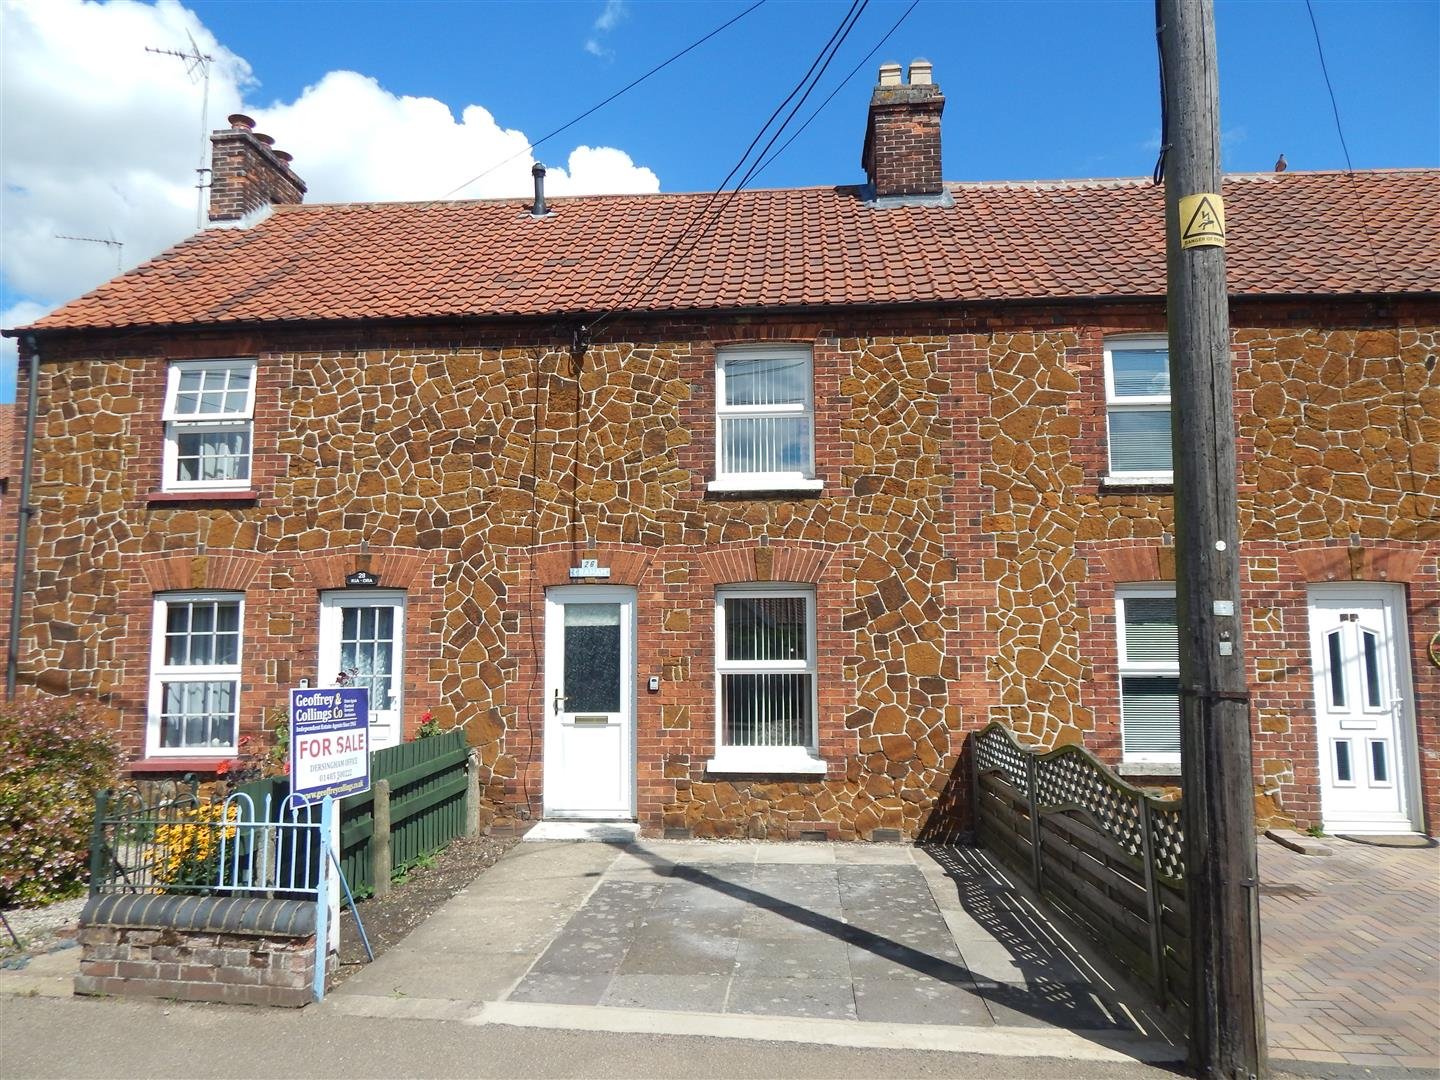 3 bed terraced house for sale in King's Lynn, PE31 6HQ, PE31